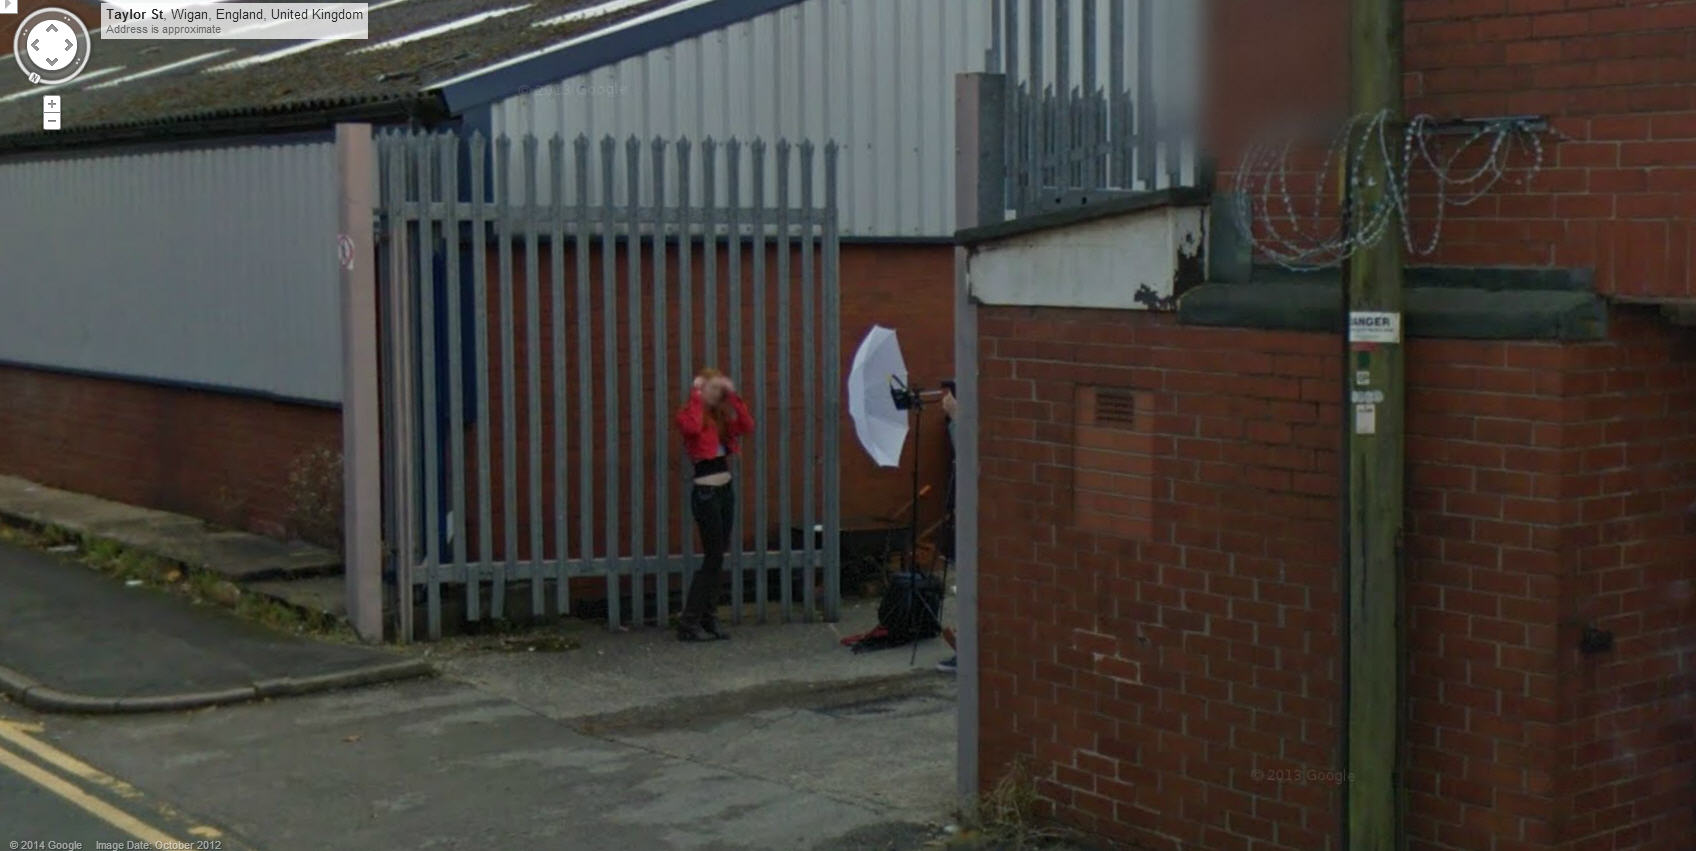 Pretty uk girl getting shot with umbrella ray gun in a back alley pretty uk girl getting shot with umbrella ray gun in a back alley gumiabroncs Images